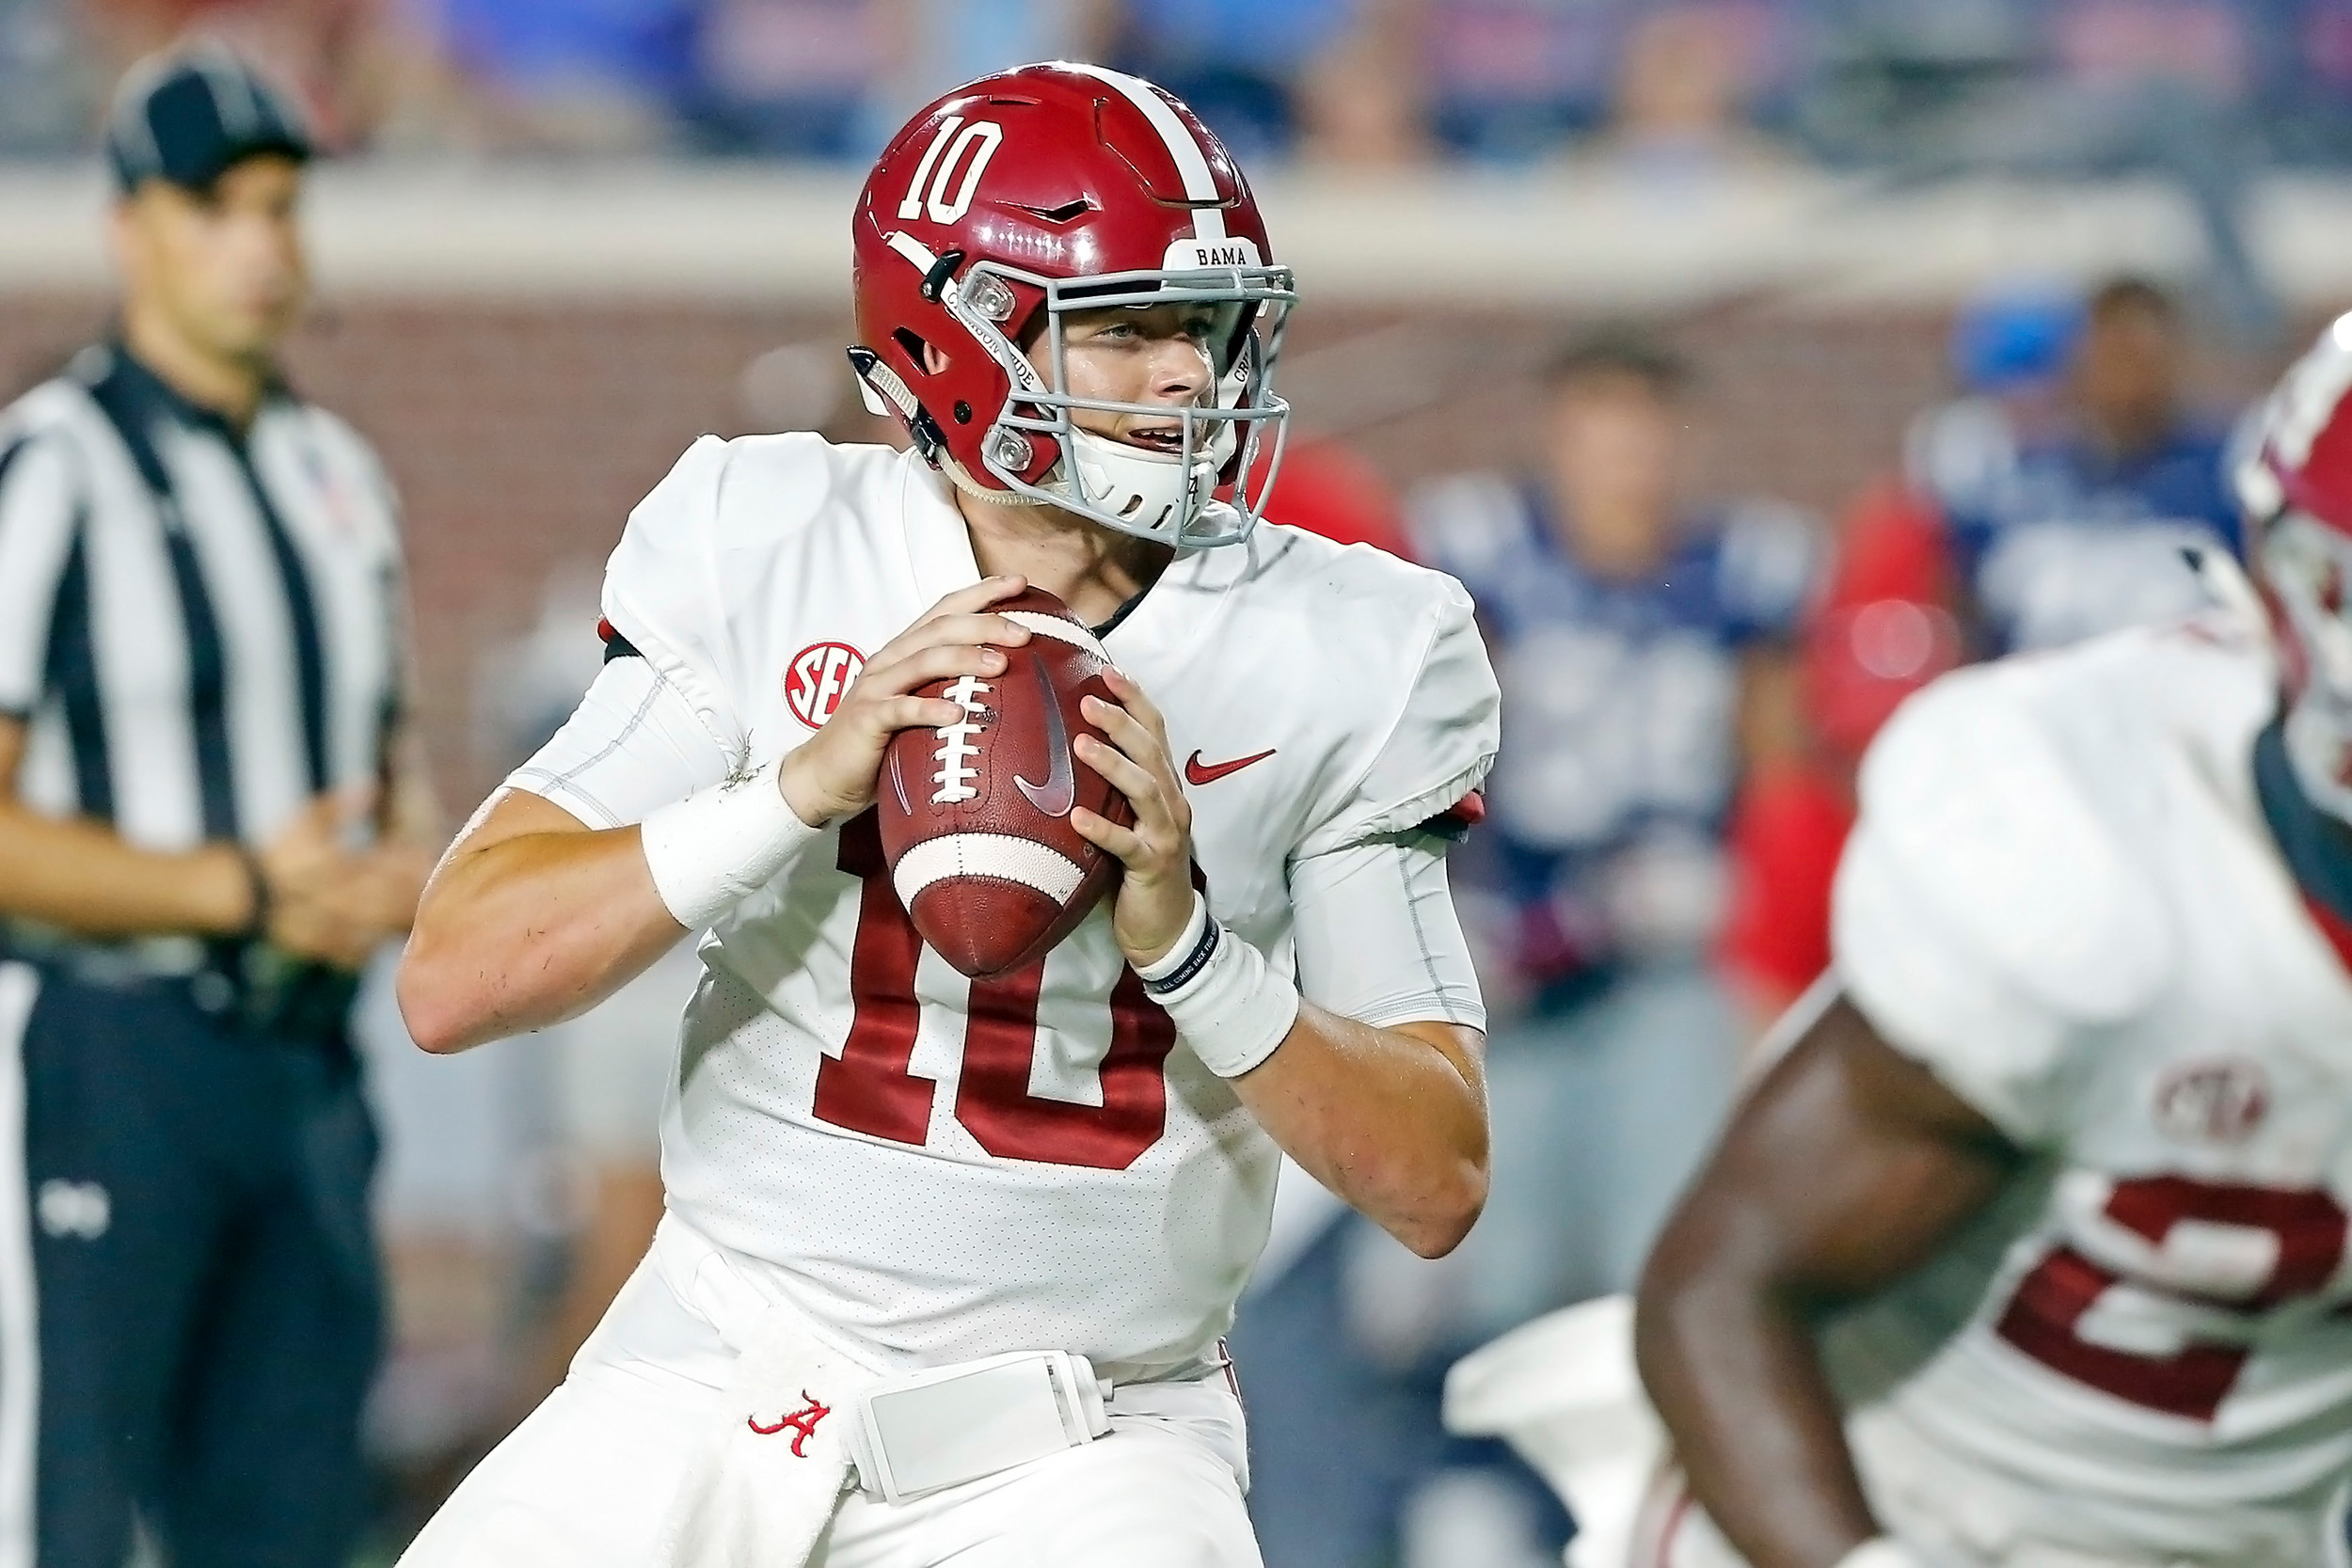 Alabama Crimson Tide quarterback Mac Jones (10)looks to pass during the game between the University of Alabama and Ole Miss at Vaught-Hemingway Stadium. Jason Clark / Daily Mountain Eagle